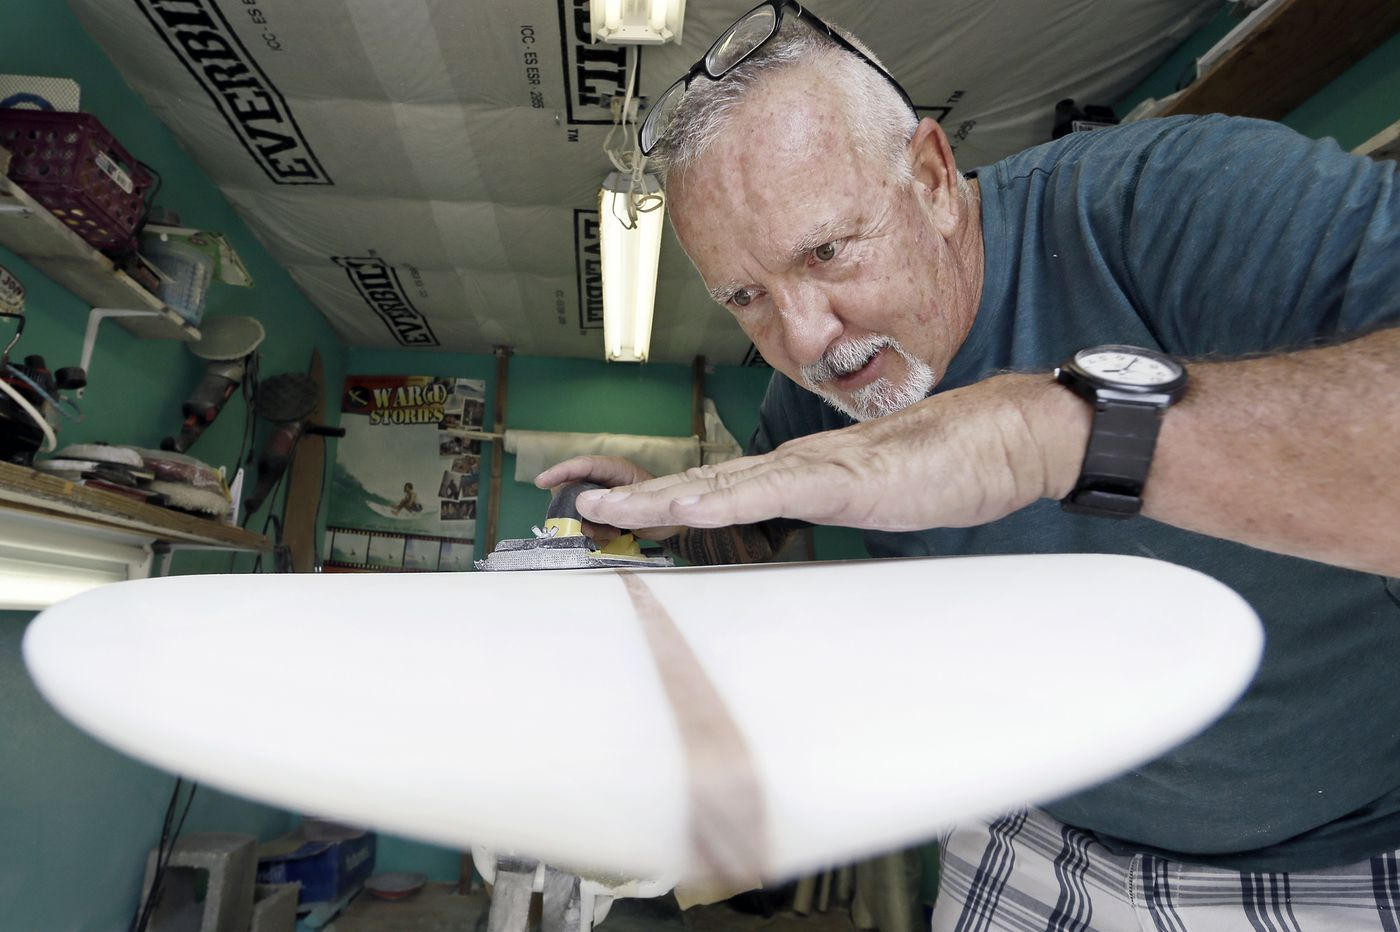 A middle-school teacher customizes surfboards to give people with disabilities the ride of their lives